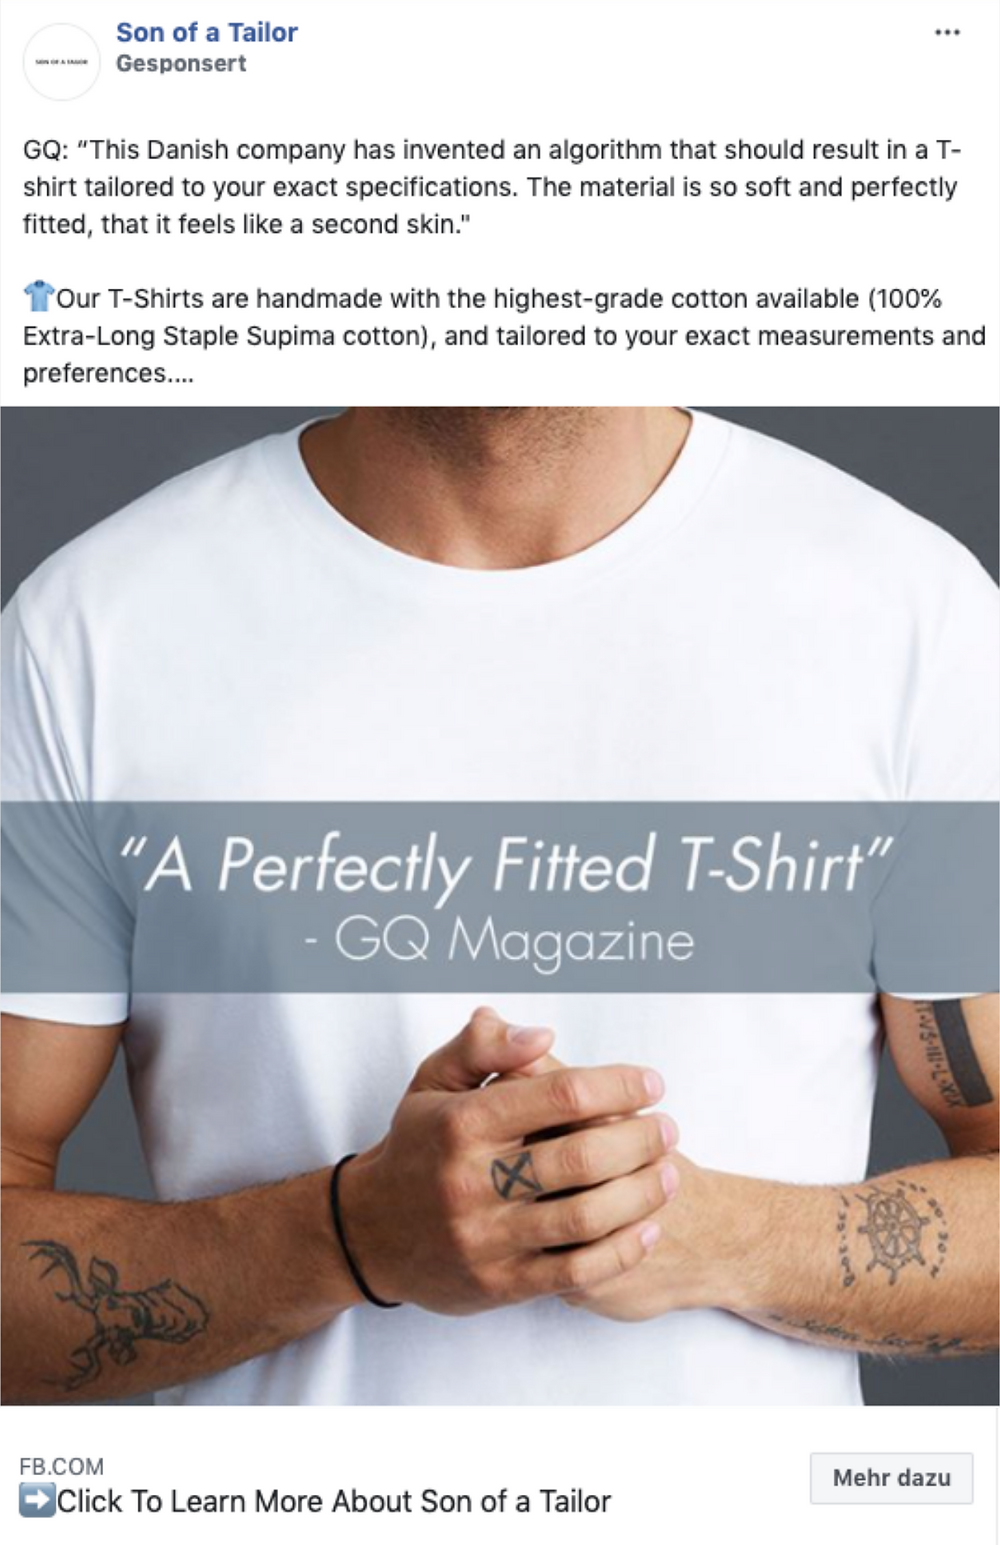 Son of a Tailor - Facebook Ad